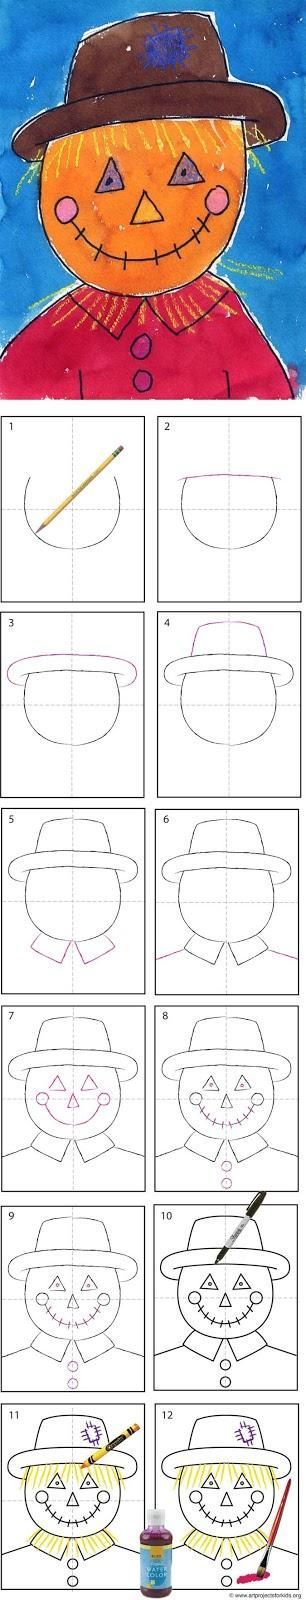 How to Draw a Scarecrow Tutorial perfect art project for any scarecrow themed story book